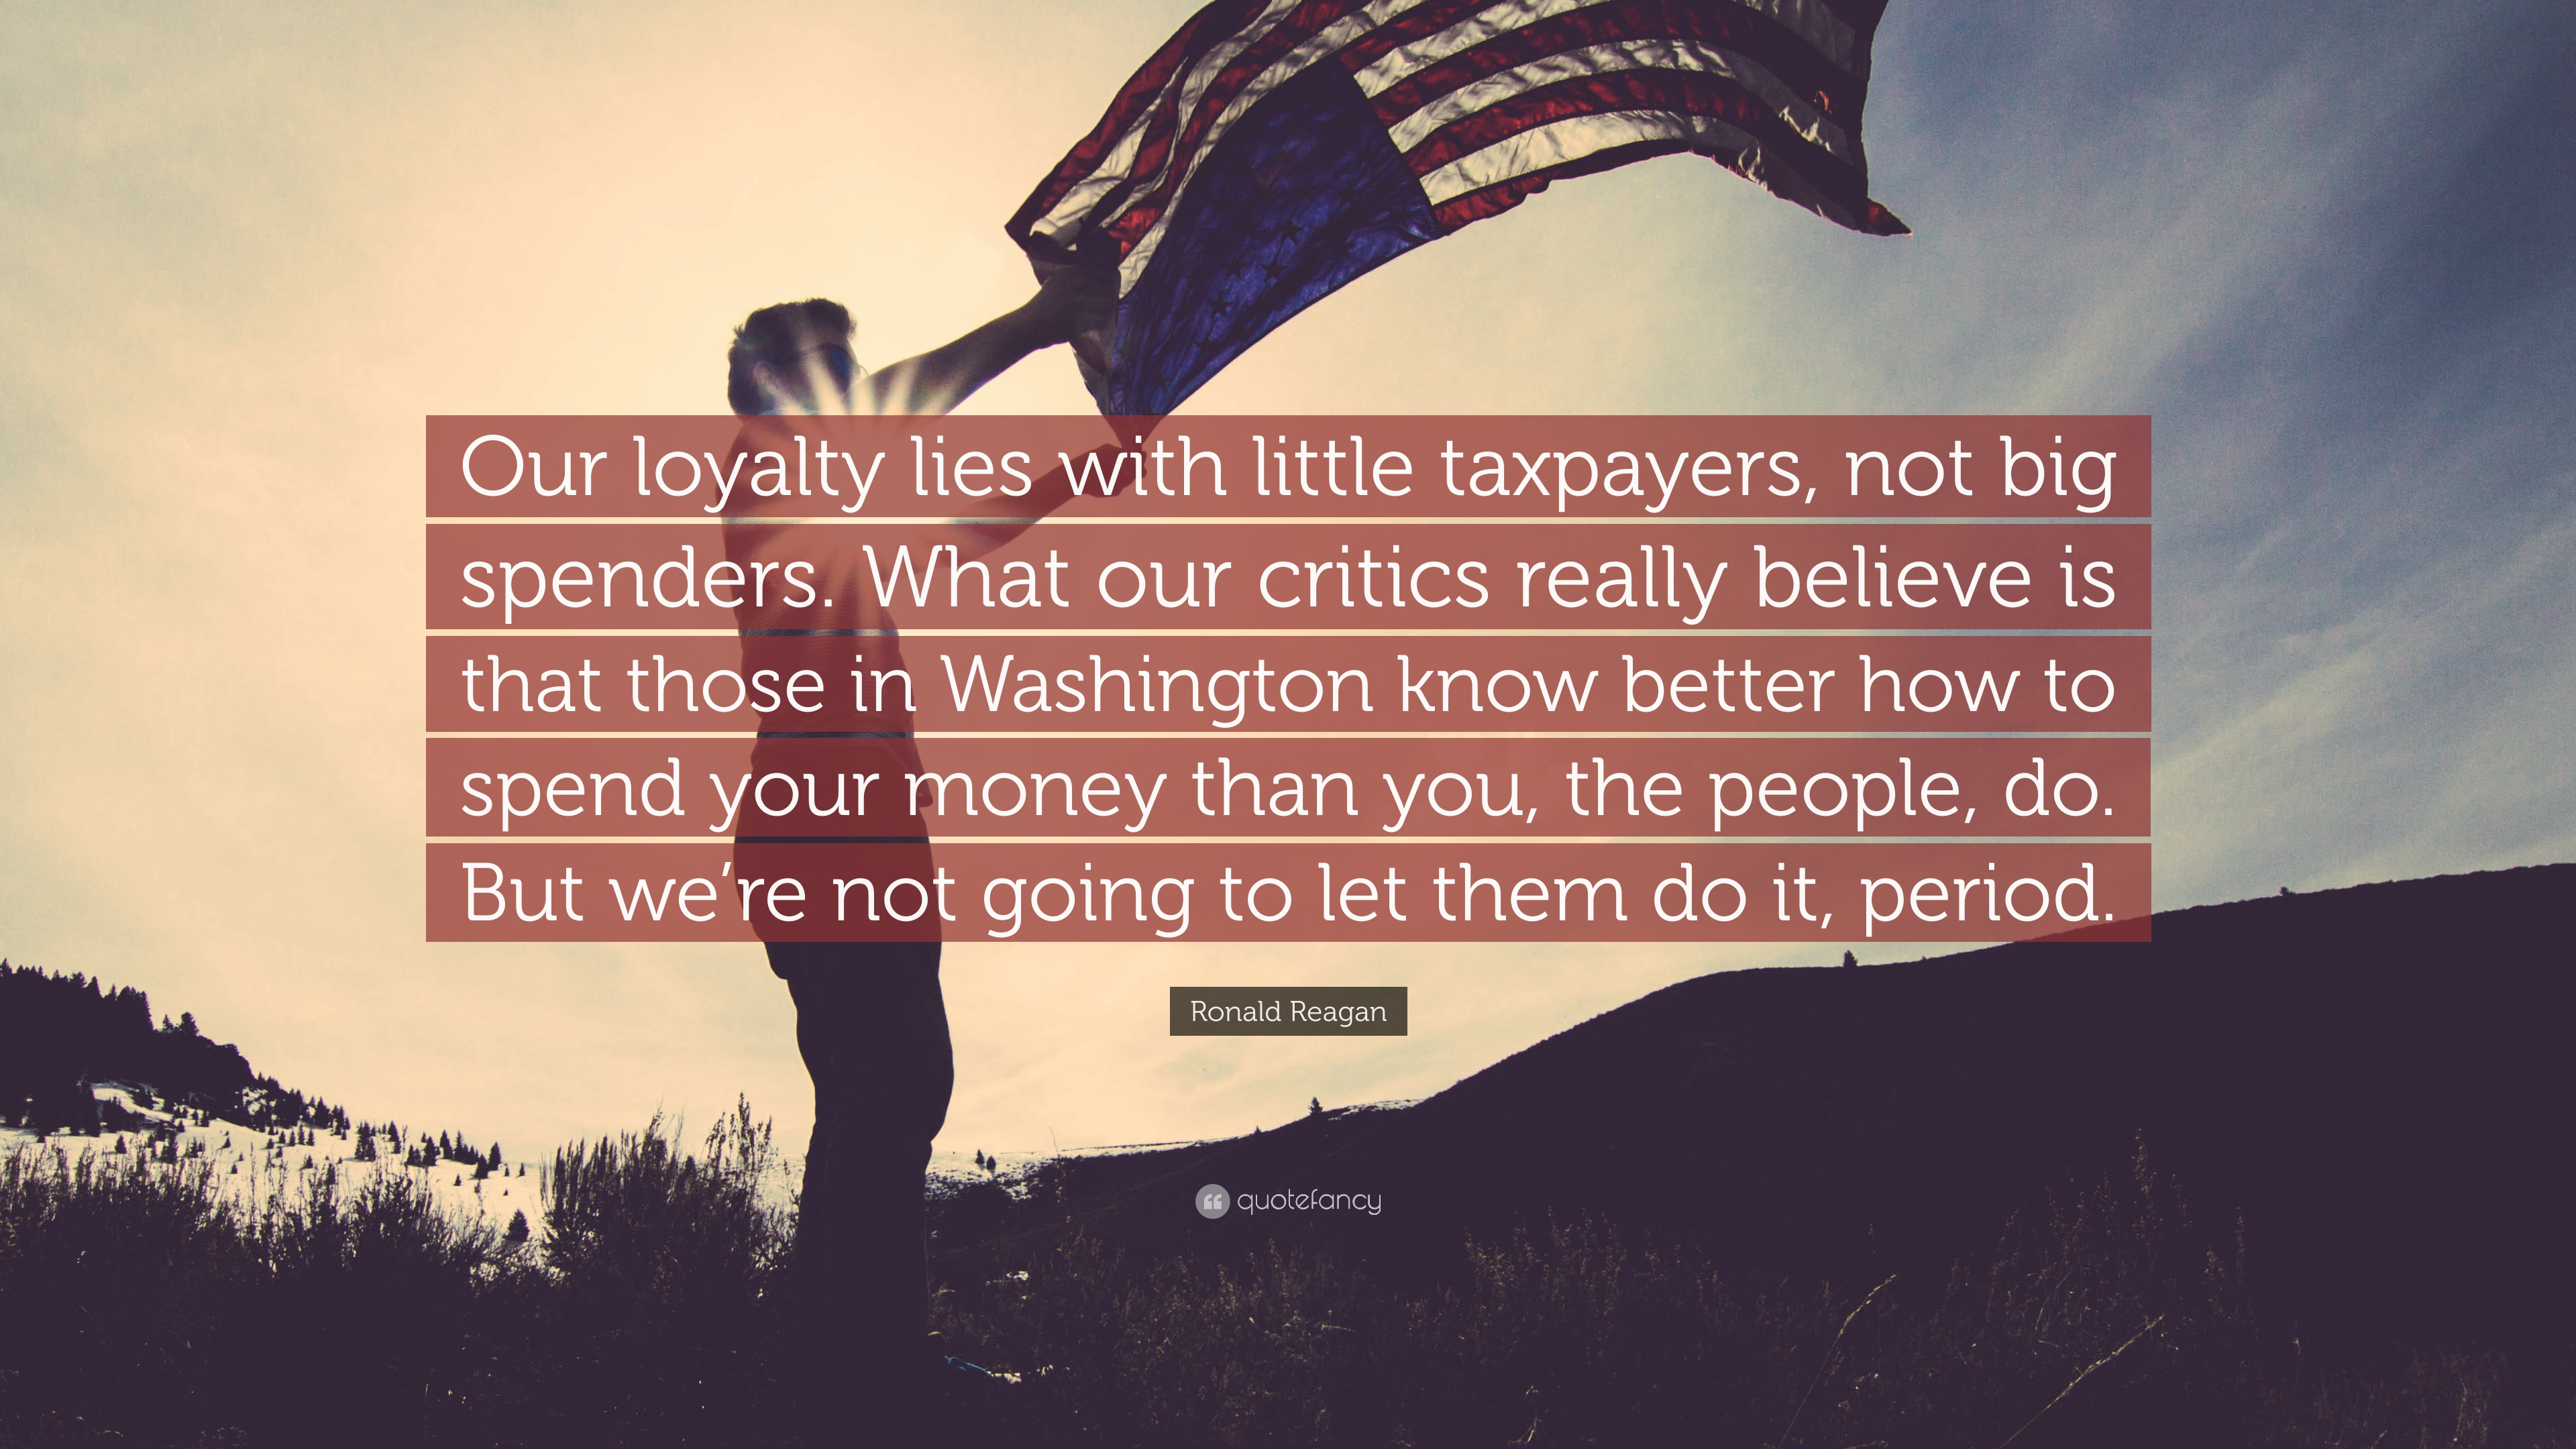 Designs quotes about loyalty quotes about loyalty quotes about loyalty - Ronald Reagan Quote Our Loyalty Lies With Little Taxpayers Not Big Spenders